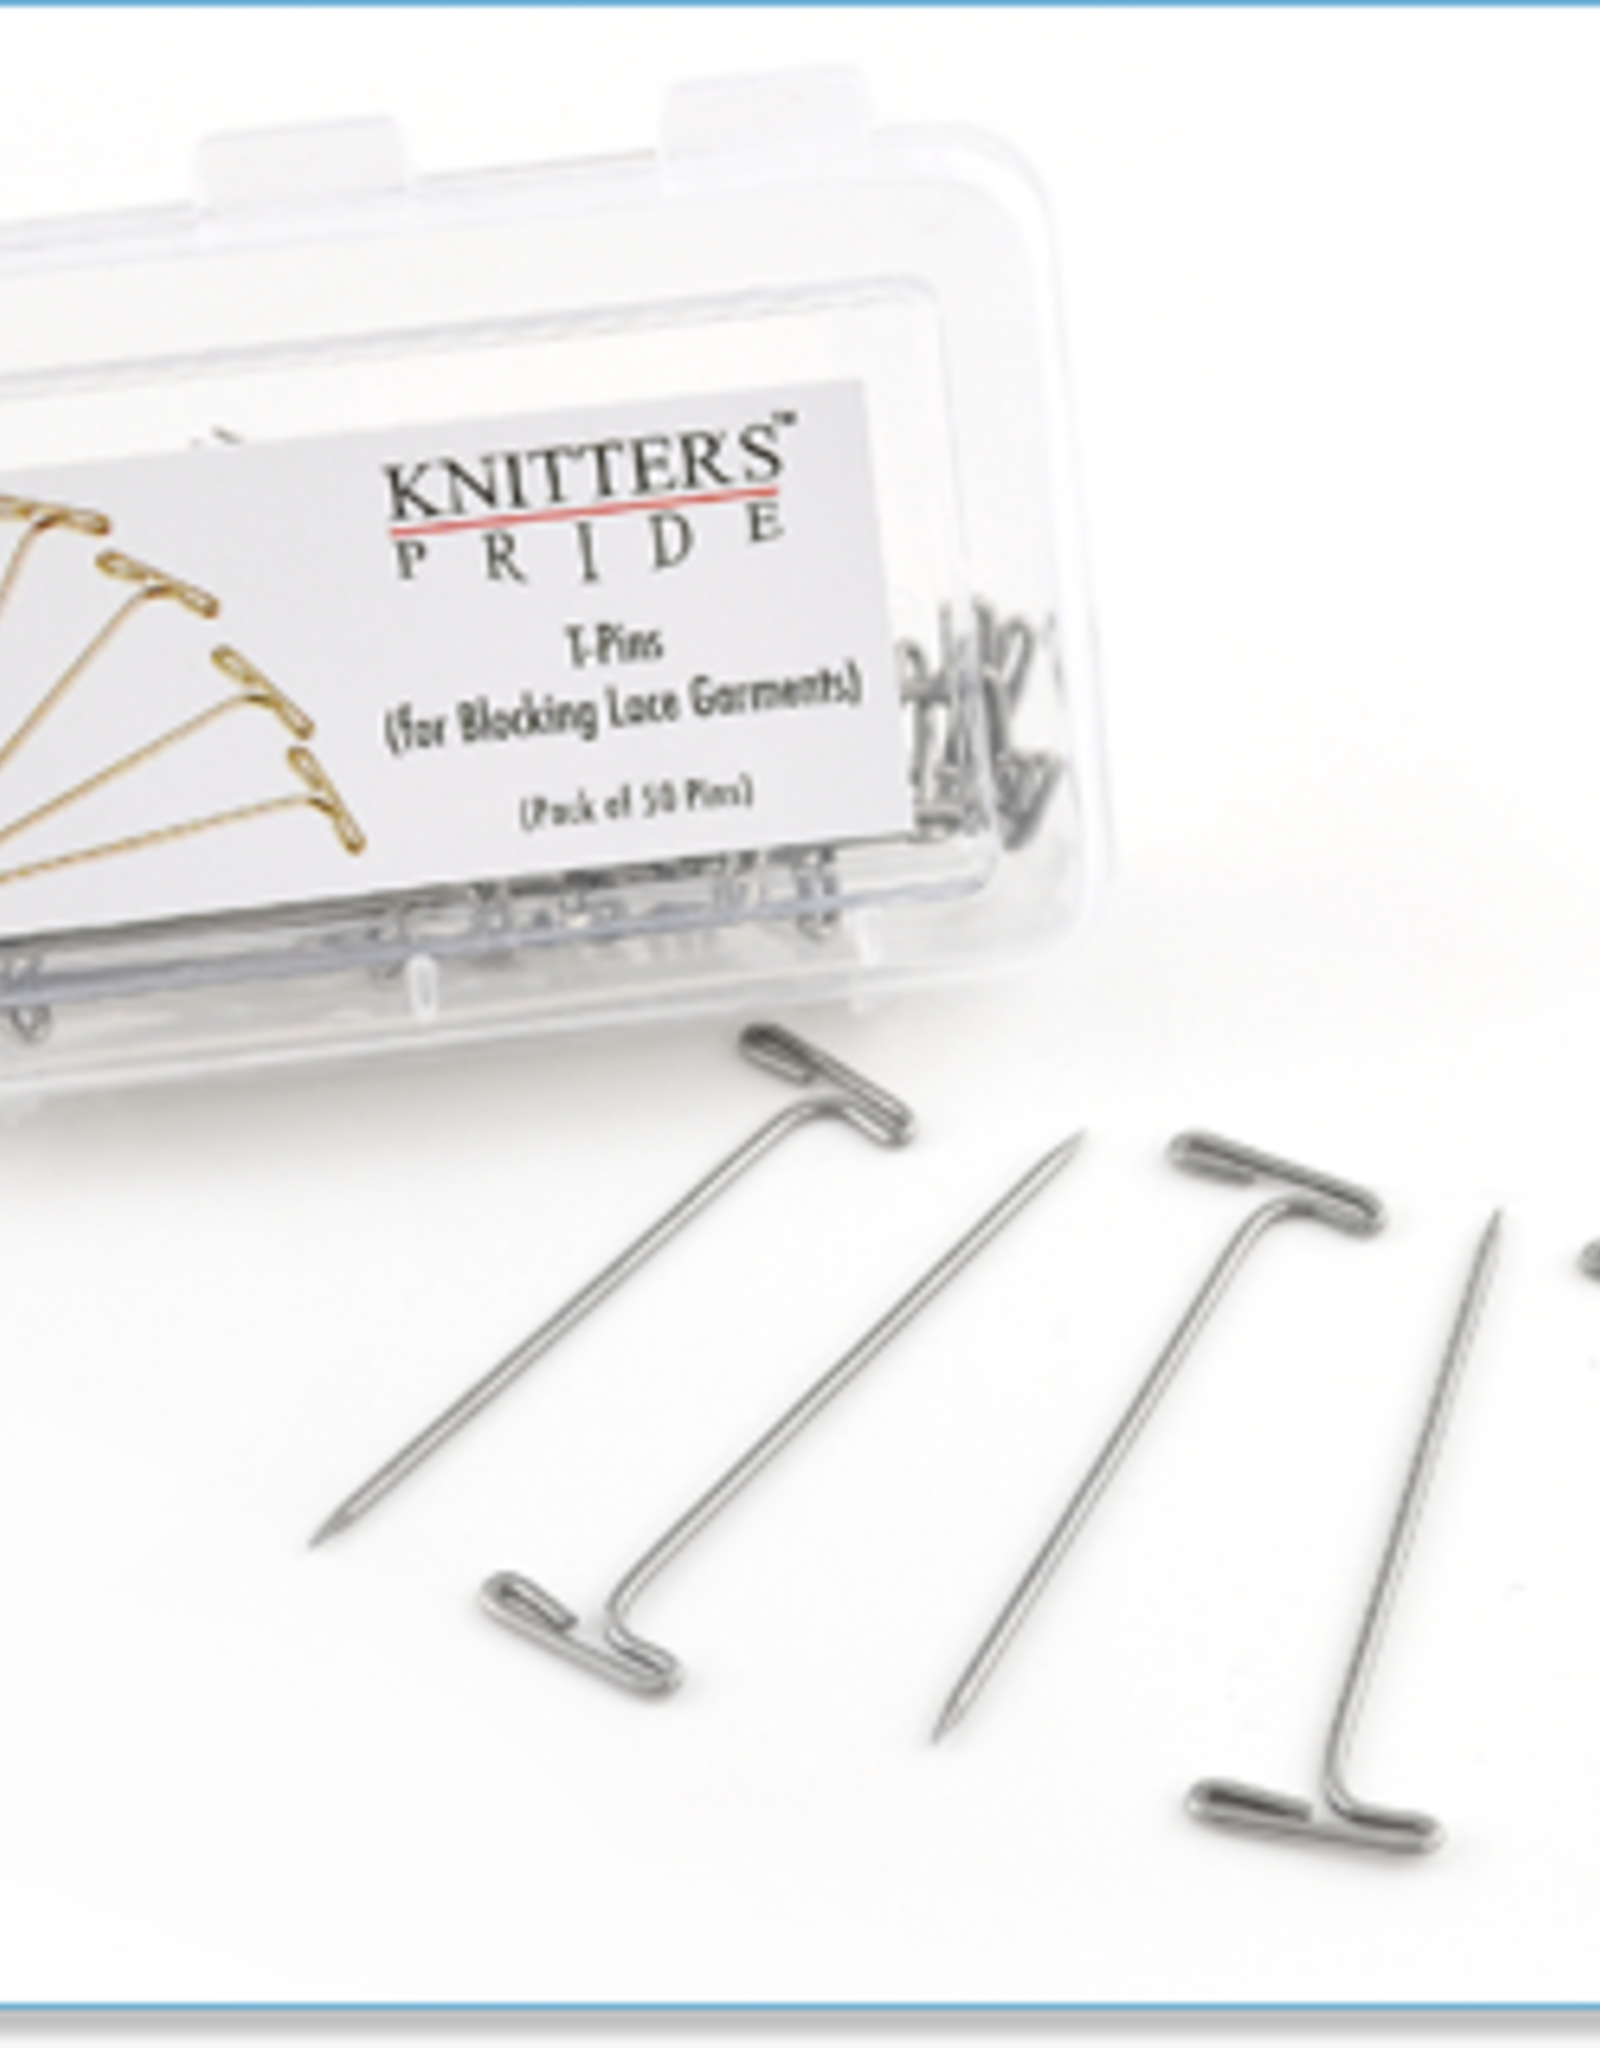 Knitters Pride T-Pins (Blocking Pins)